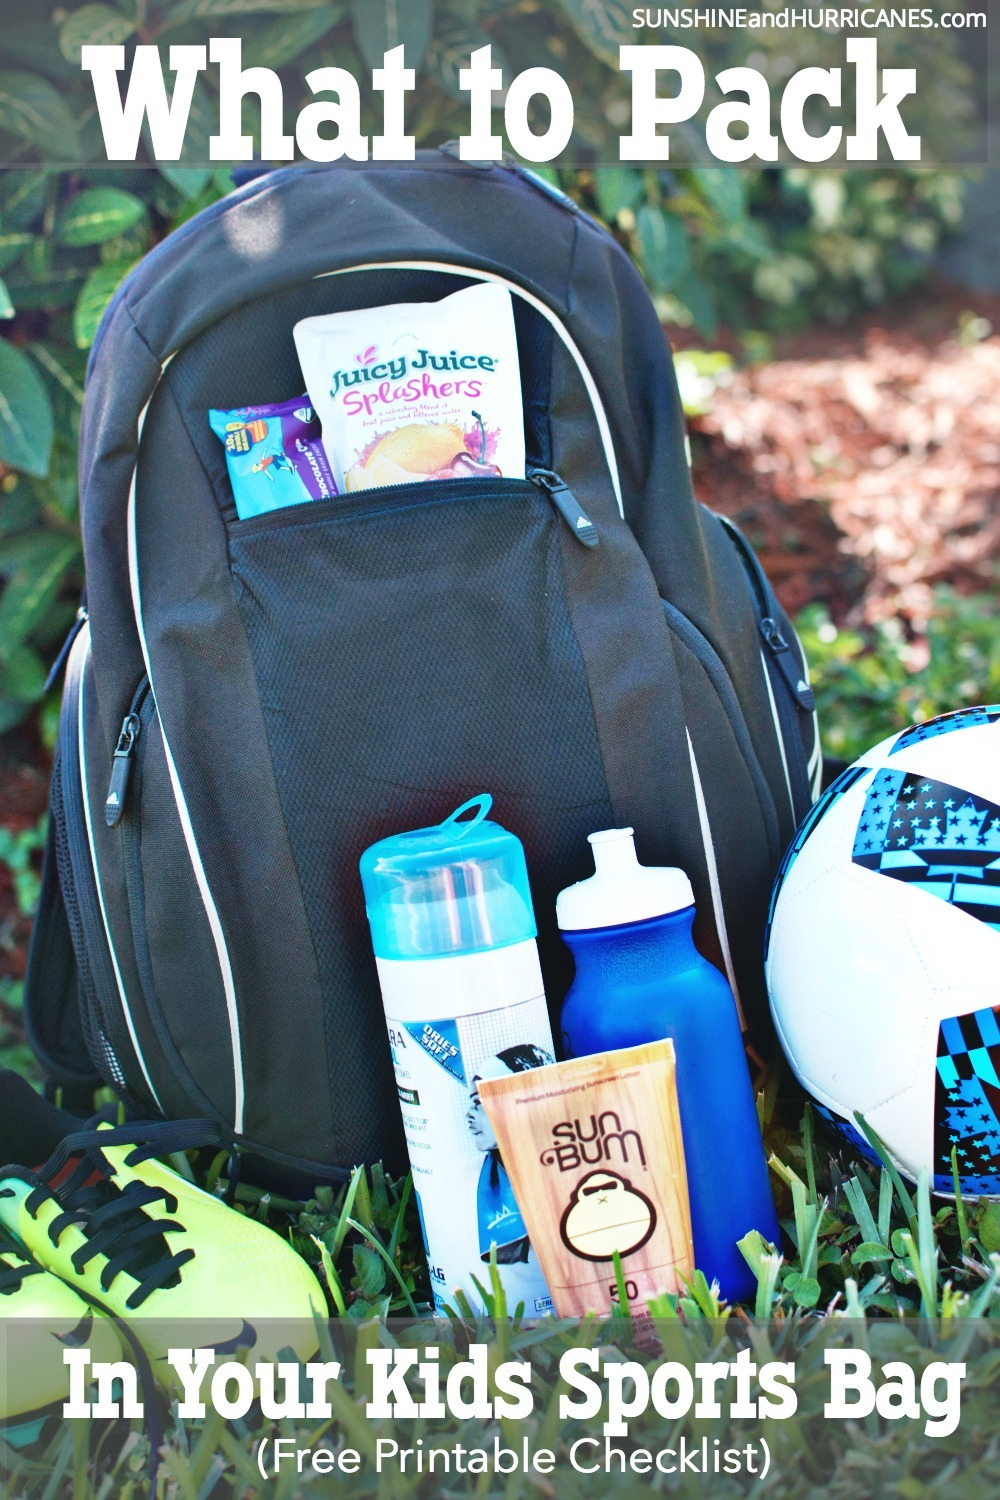 Help your kids learn the important life skill of keeping themselves organized for their activities and help them pack their own sports bag. This handy kids sports bag essentials checklist will be super helpful. Kids Sports Bag Essentials